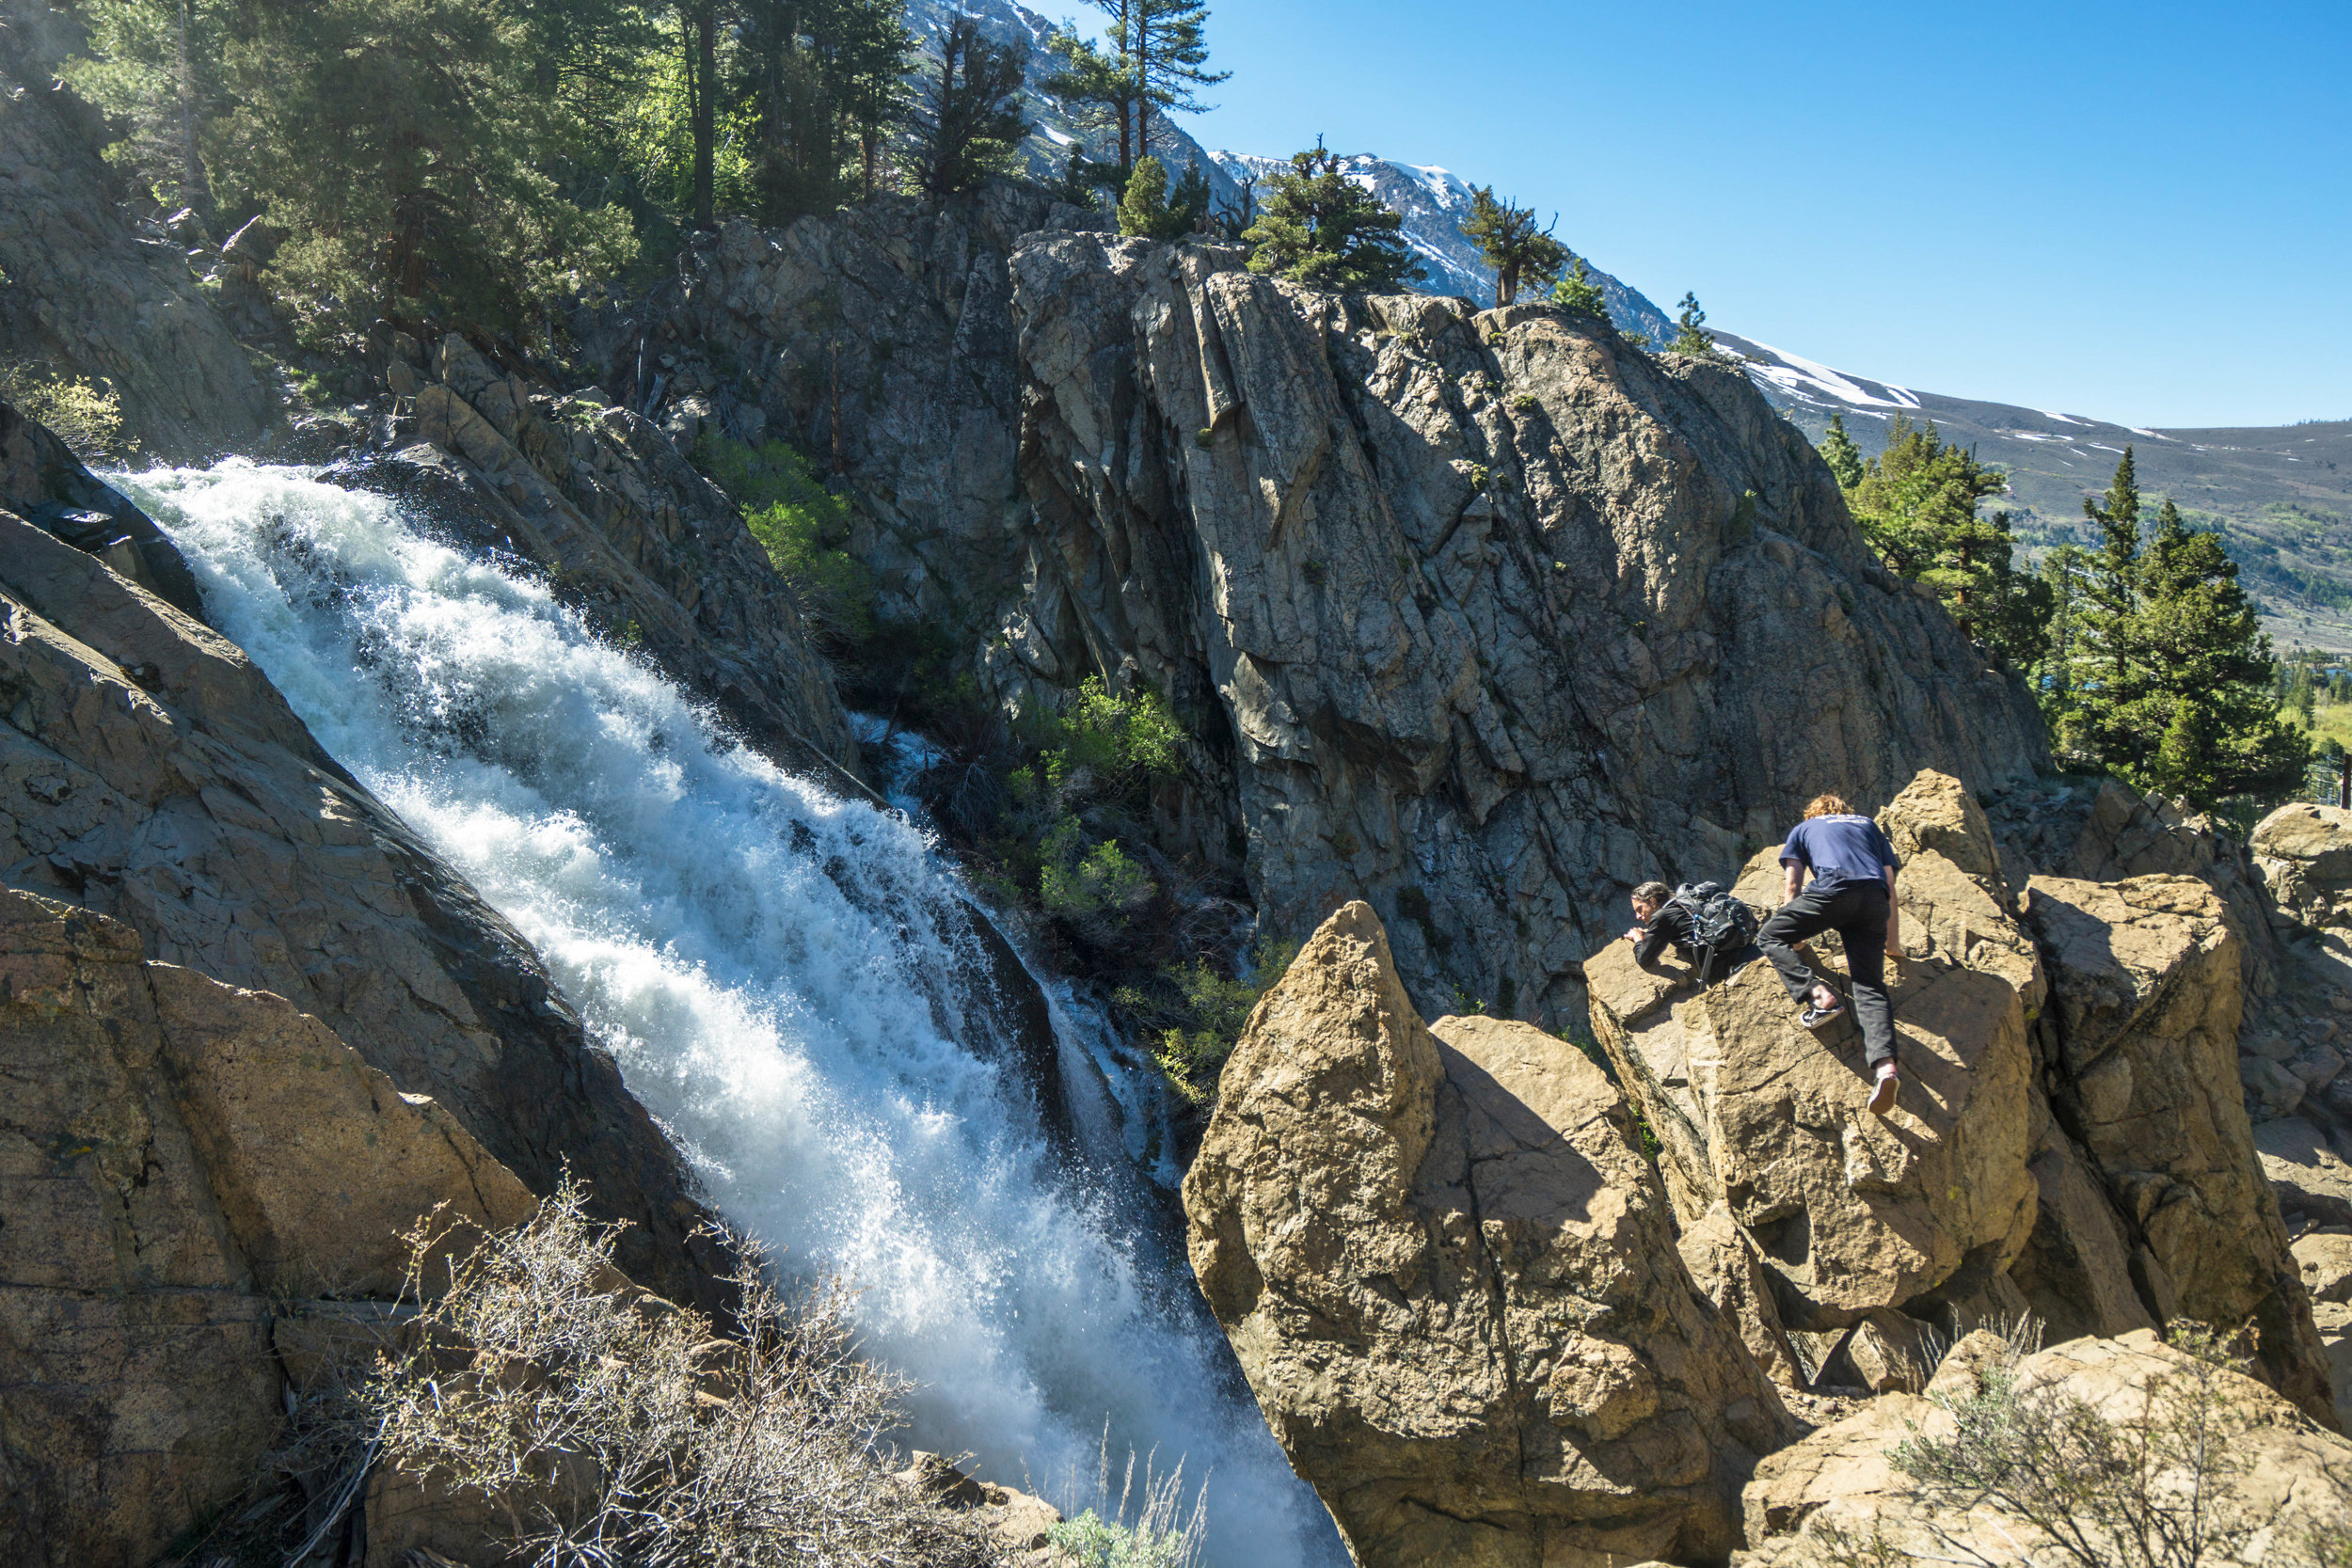 As we approach the end of our hike, we take one final peak at the last cascade.